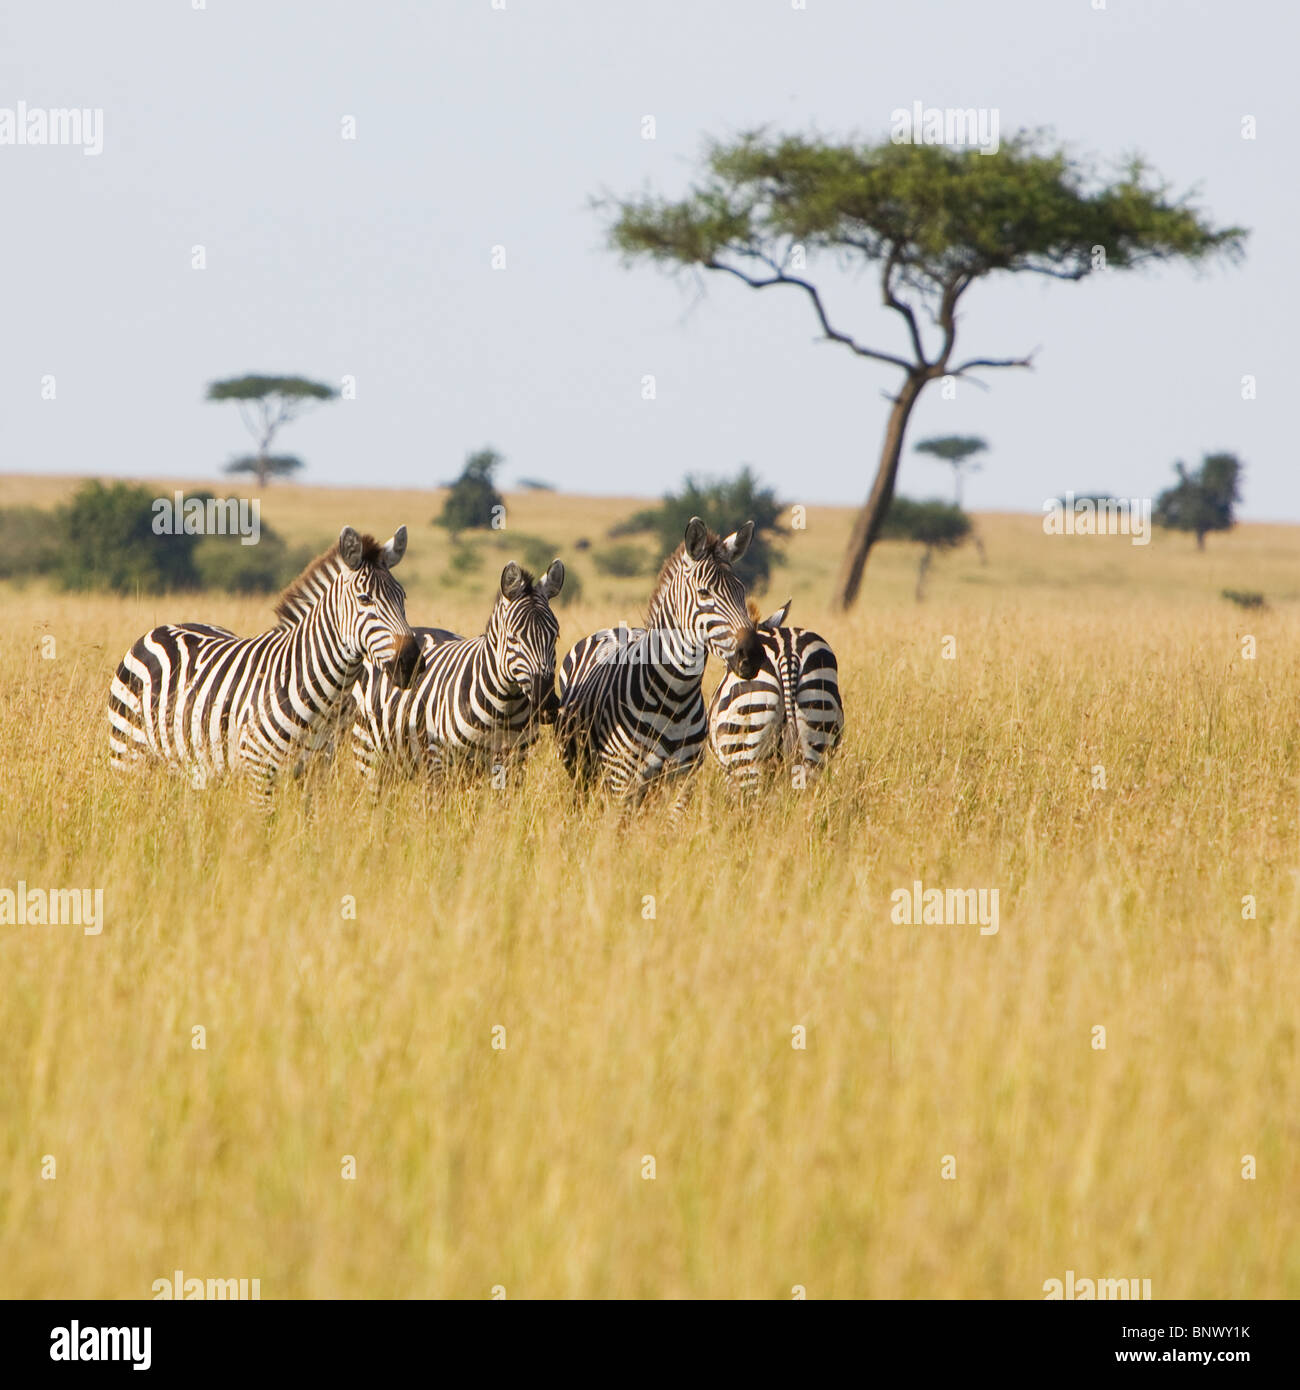 Zebra in the Masai Mara Kenya - Stock Image